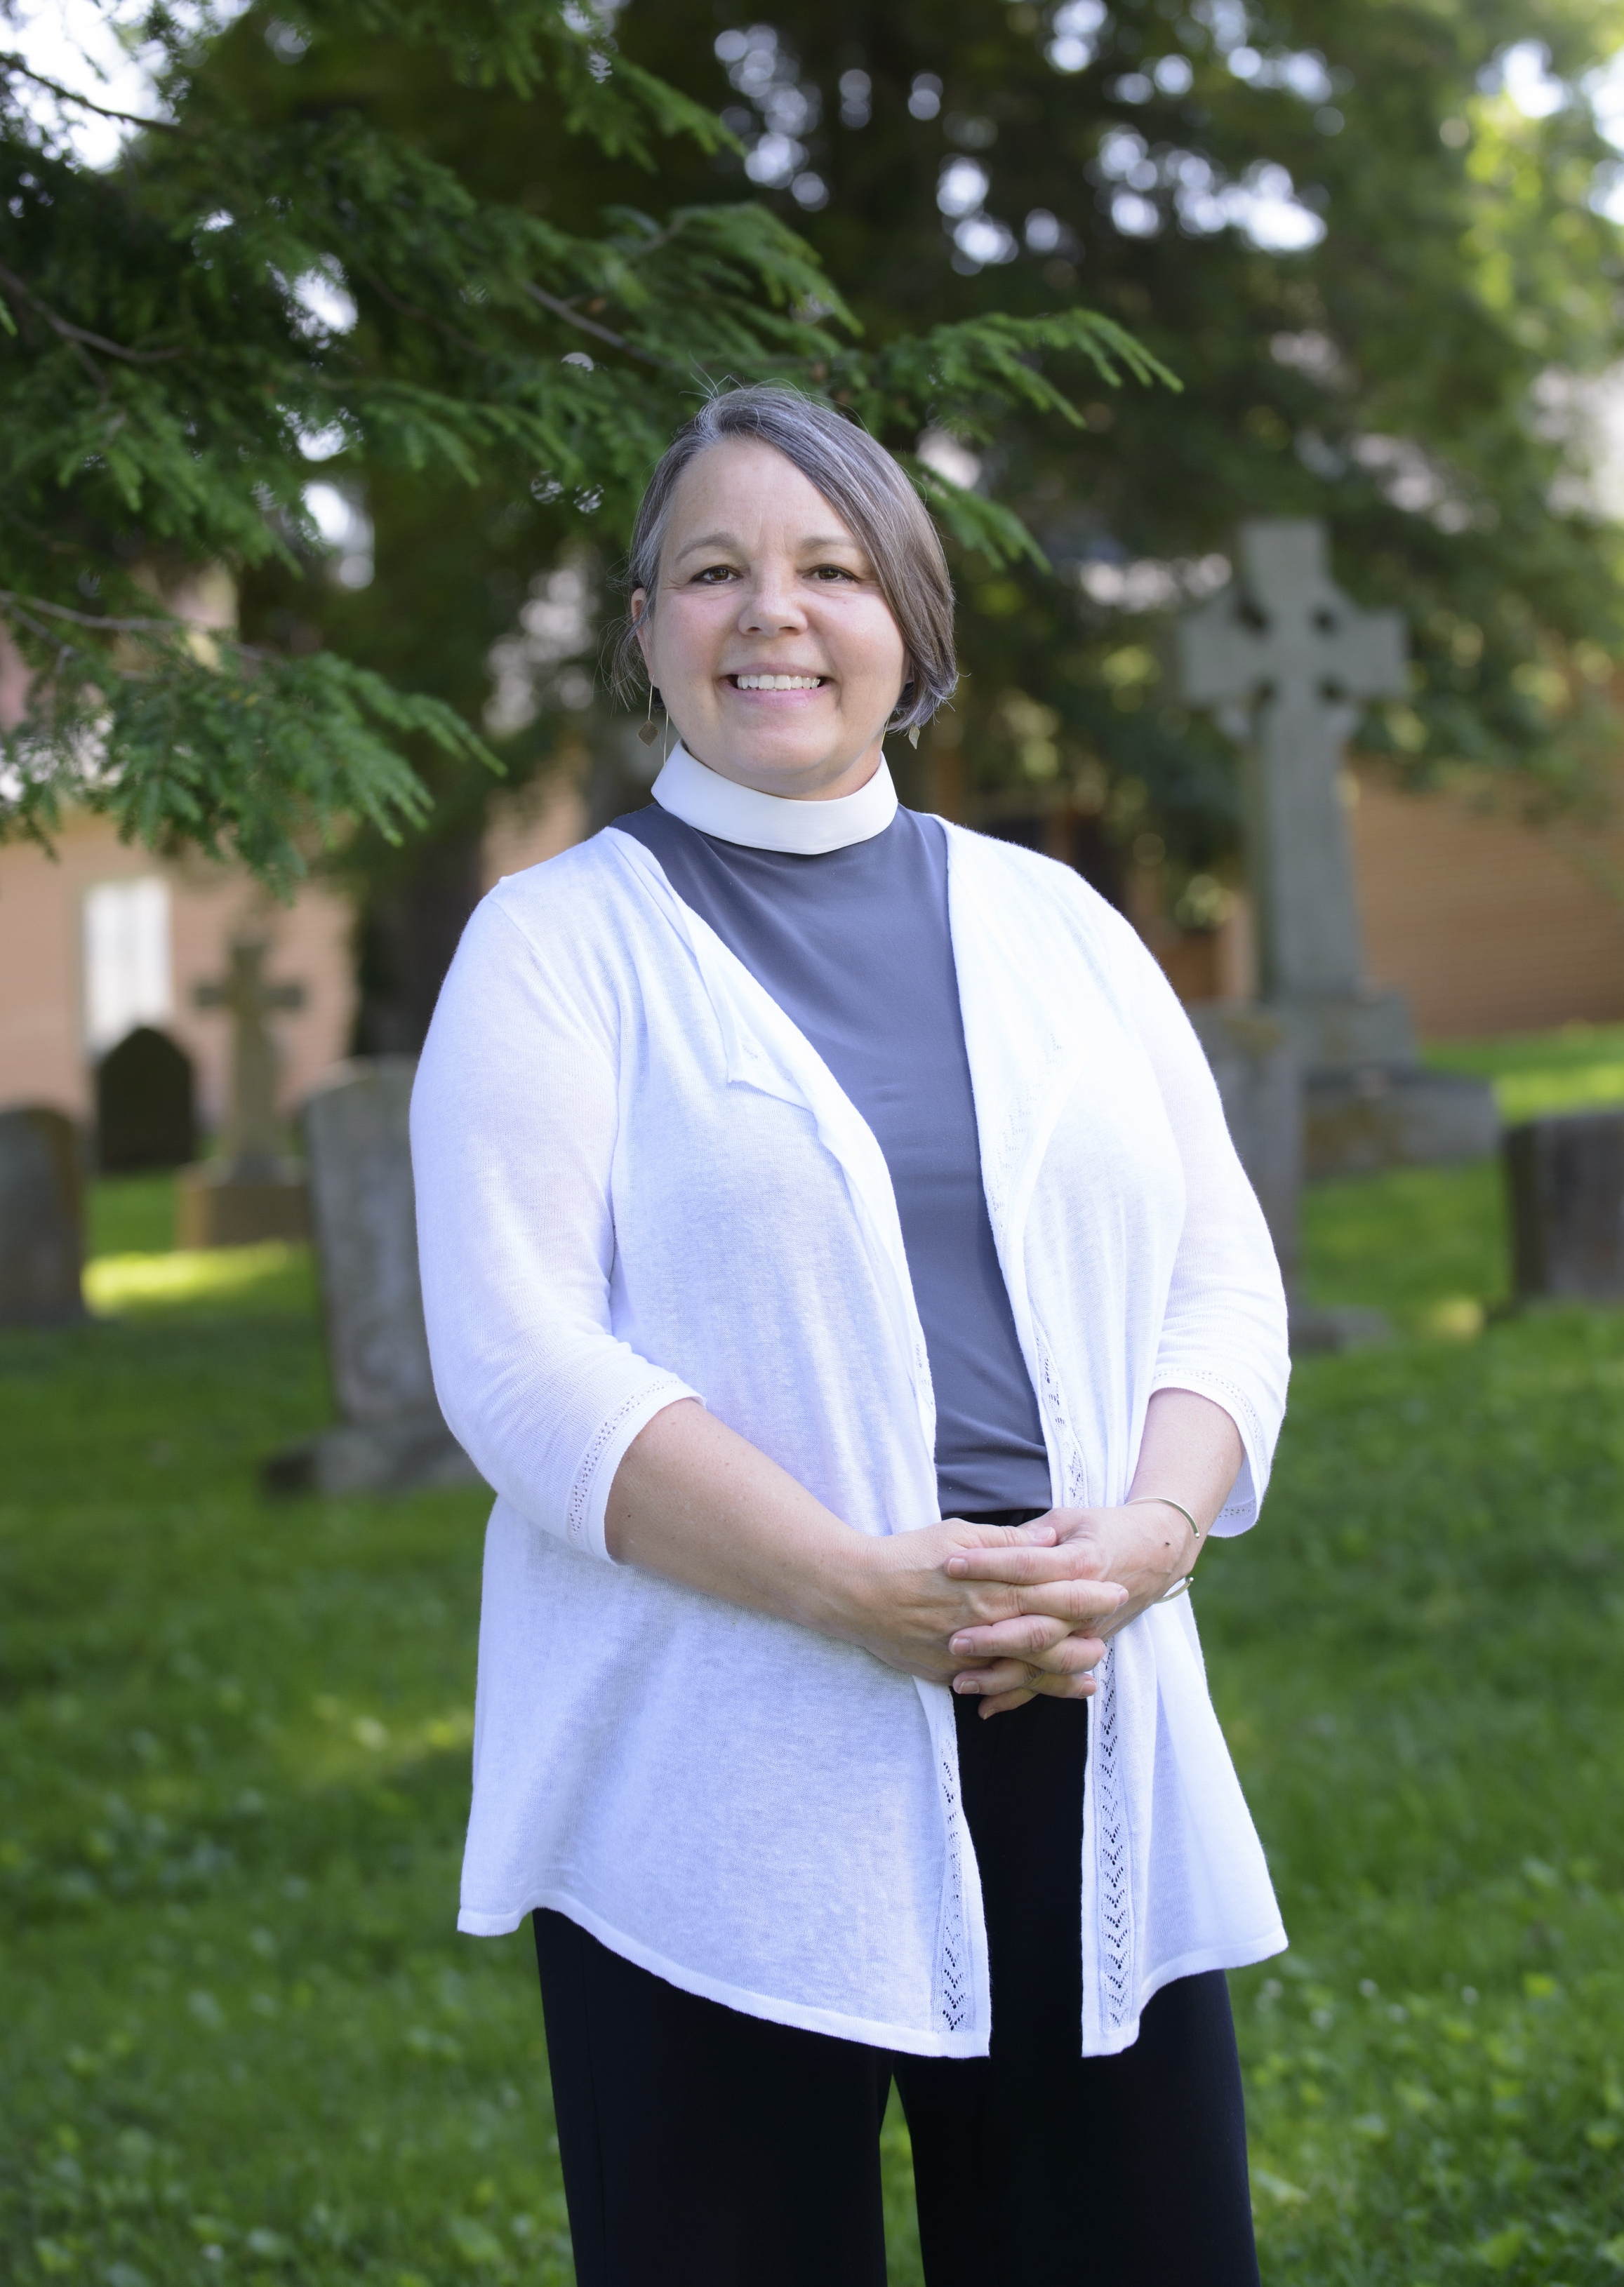 The Reverend Jacqueline Combs, Deacon